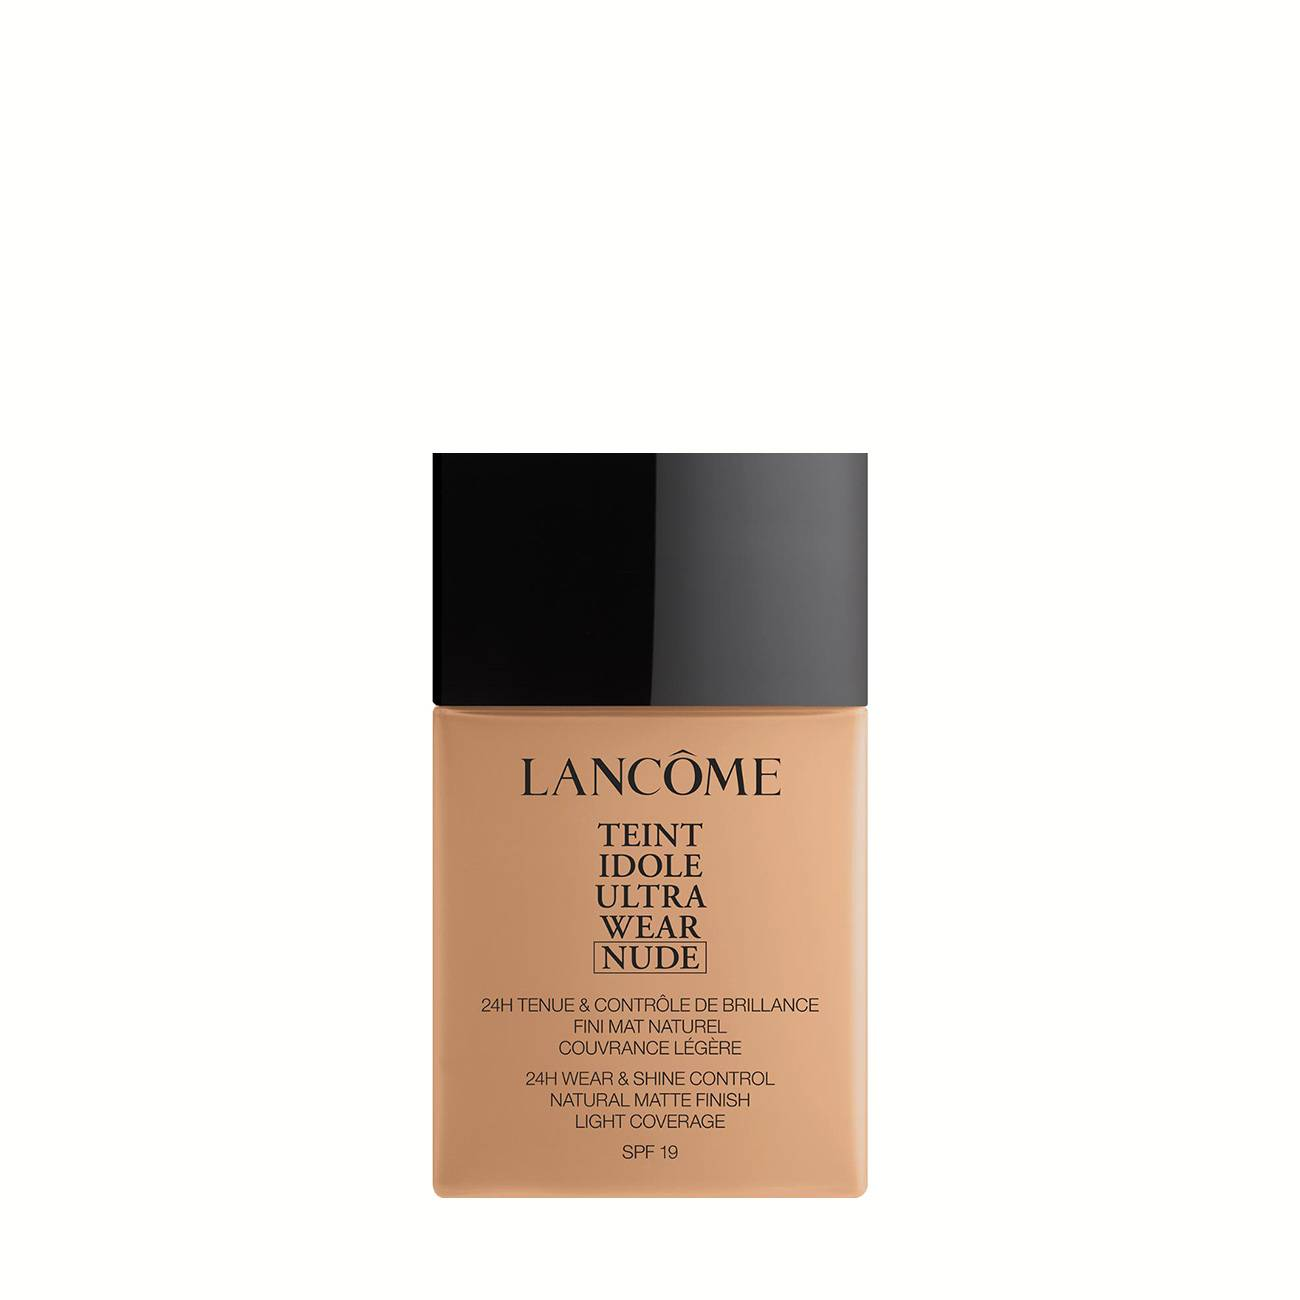 Teint Idole Ultra Wear Nude 045 40ml Lancôme imagine 2021 bestvalue.eu